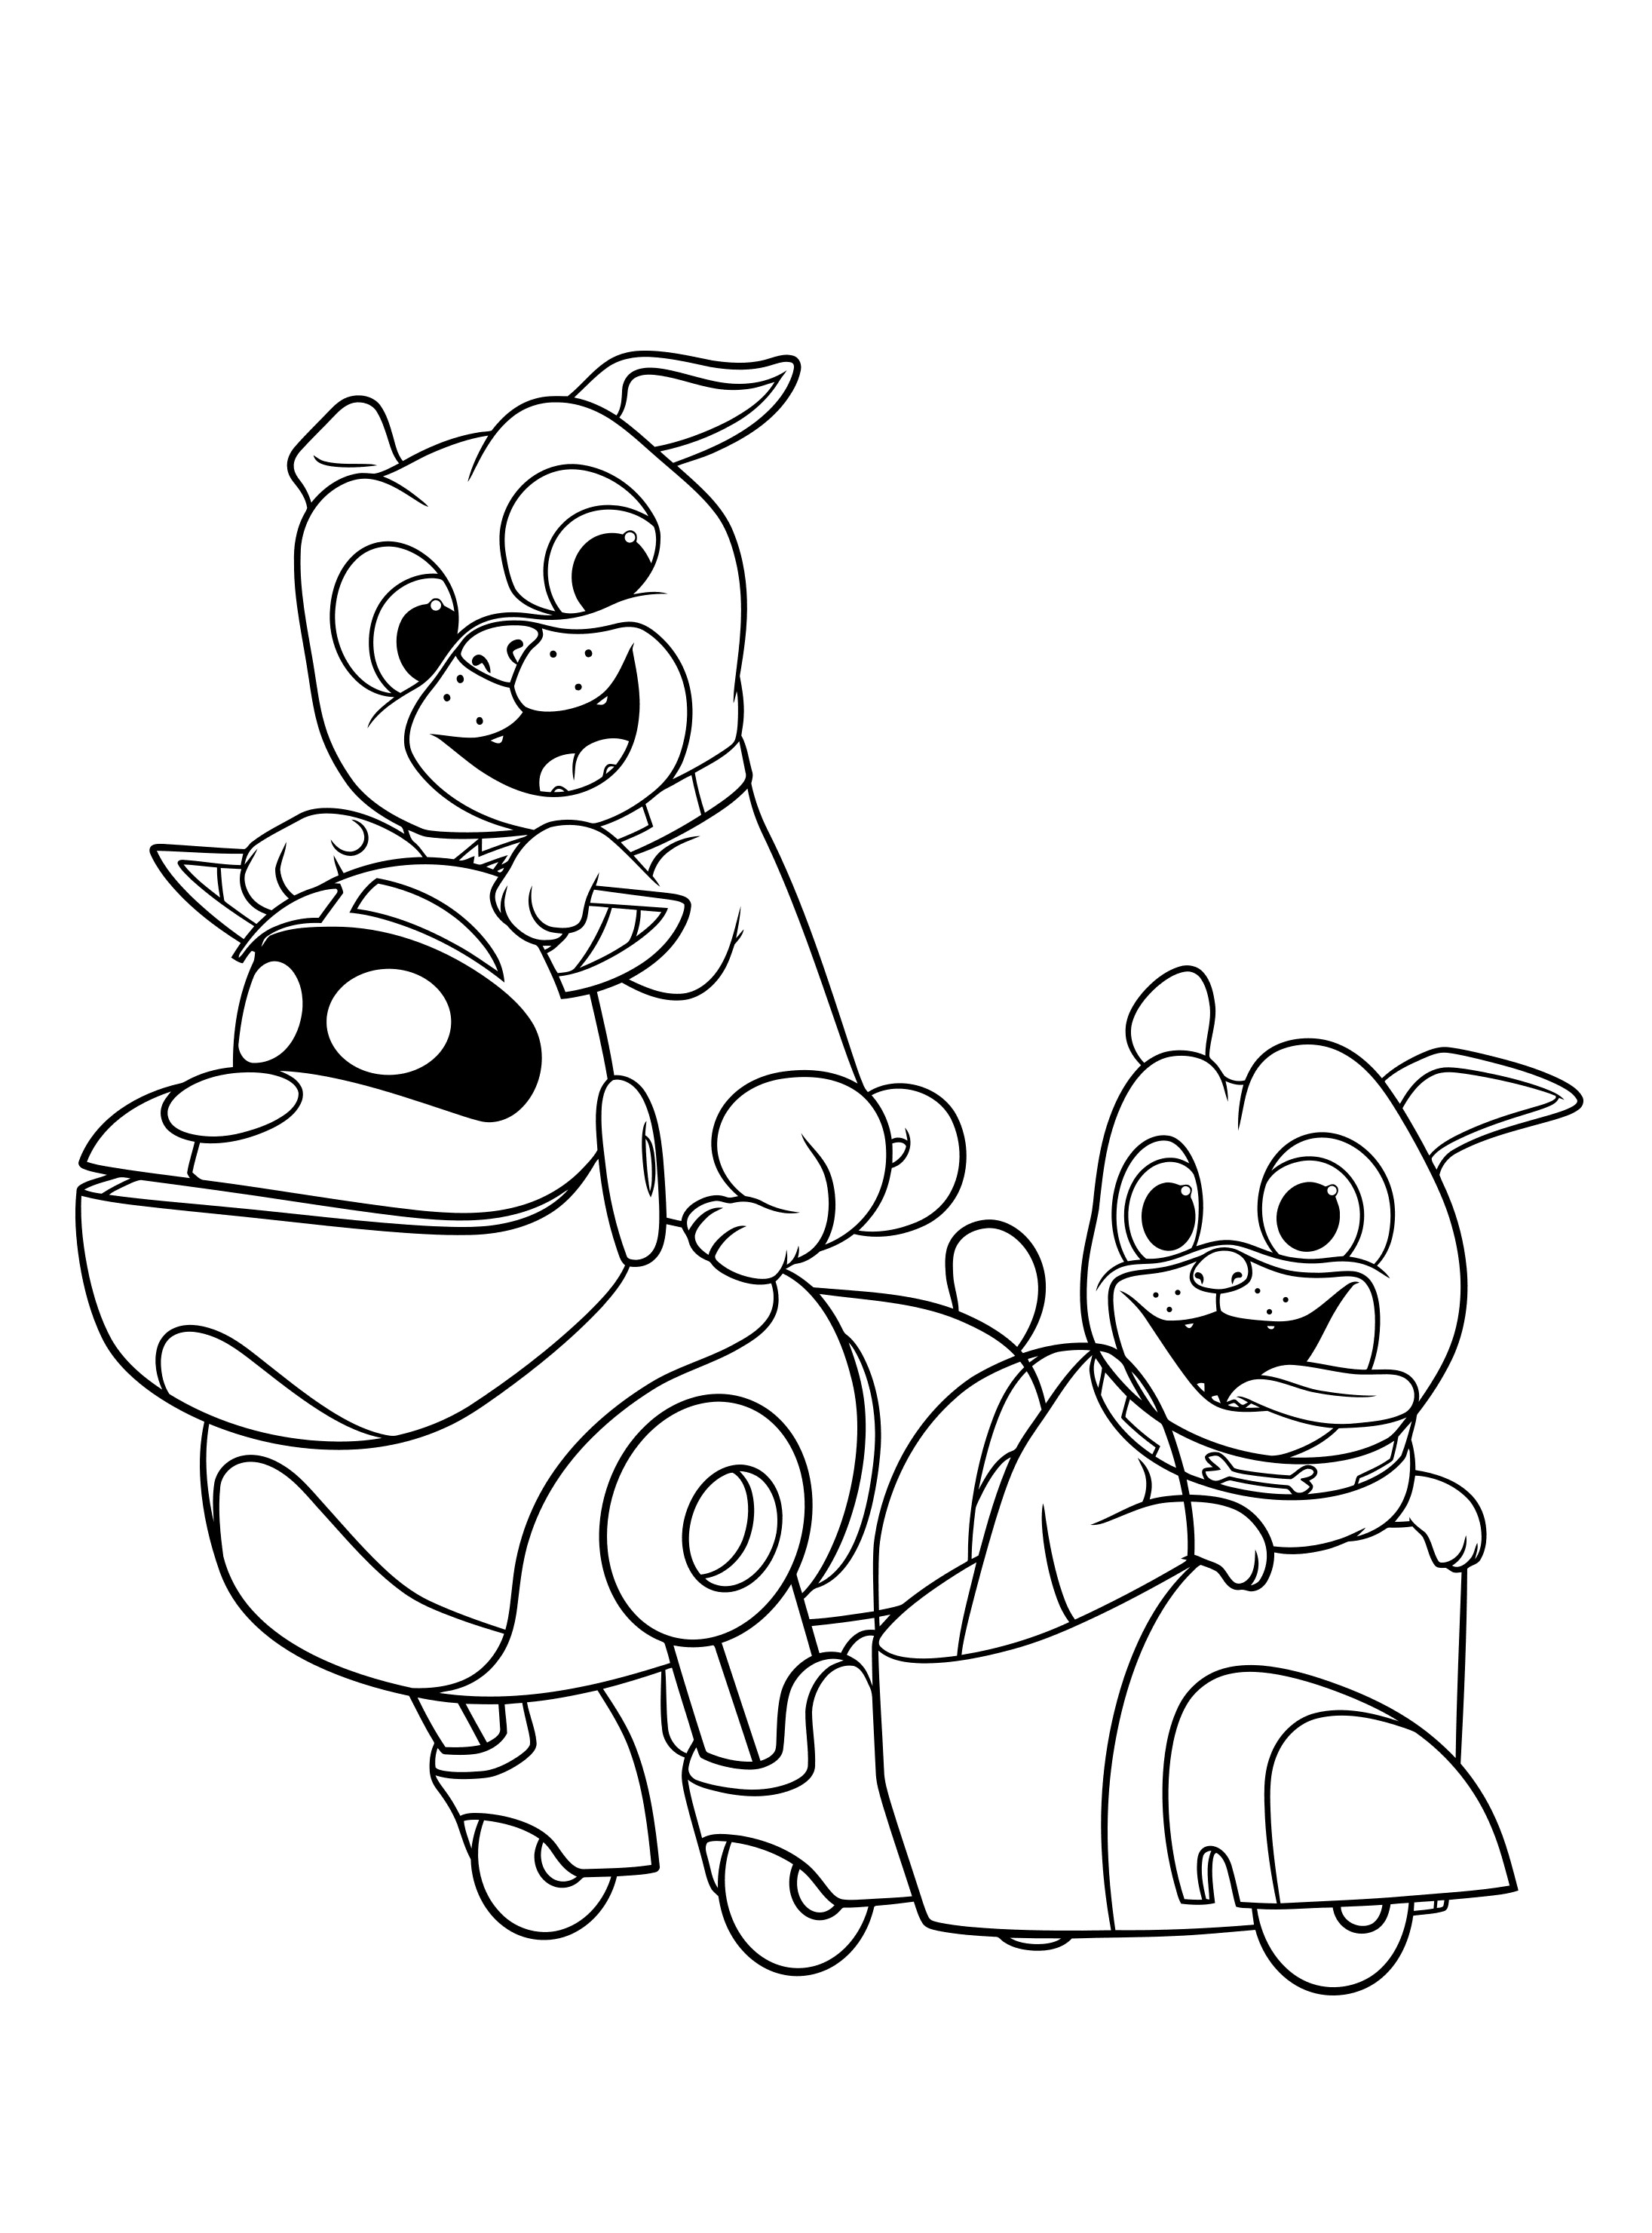 coloring puppy dog pals puppy dog pals coloring pages to download and print for free dog pals puppy coloring